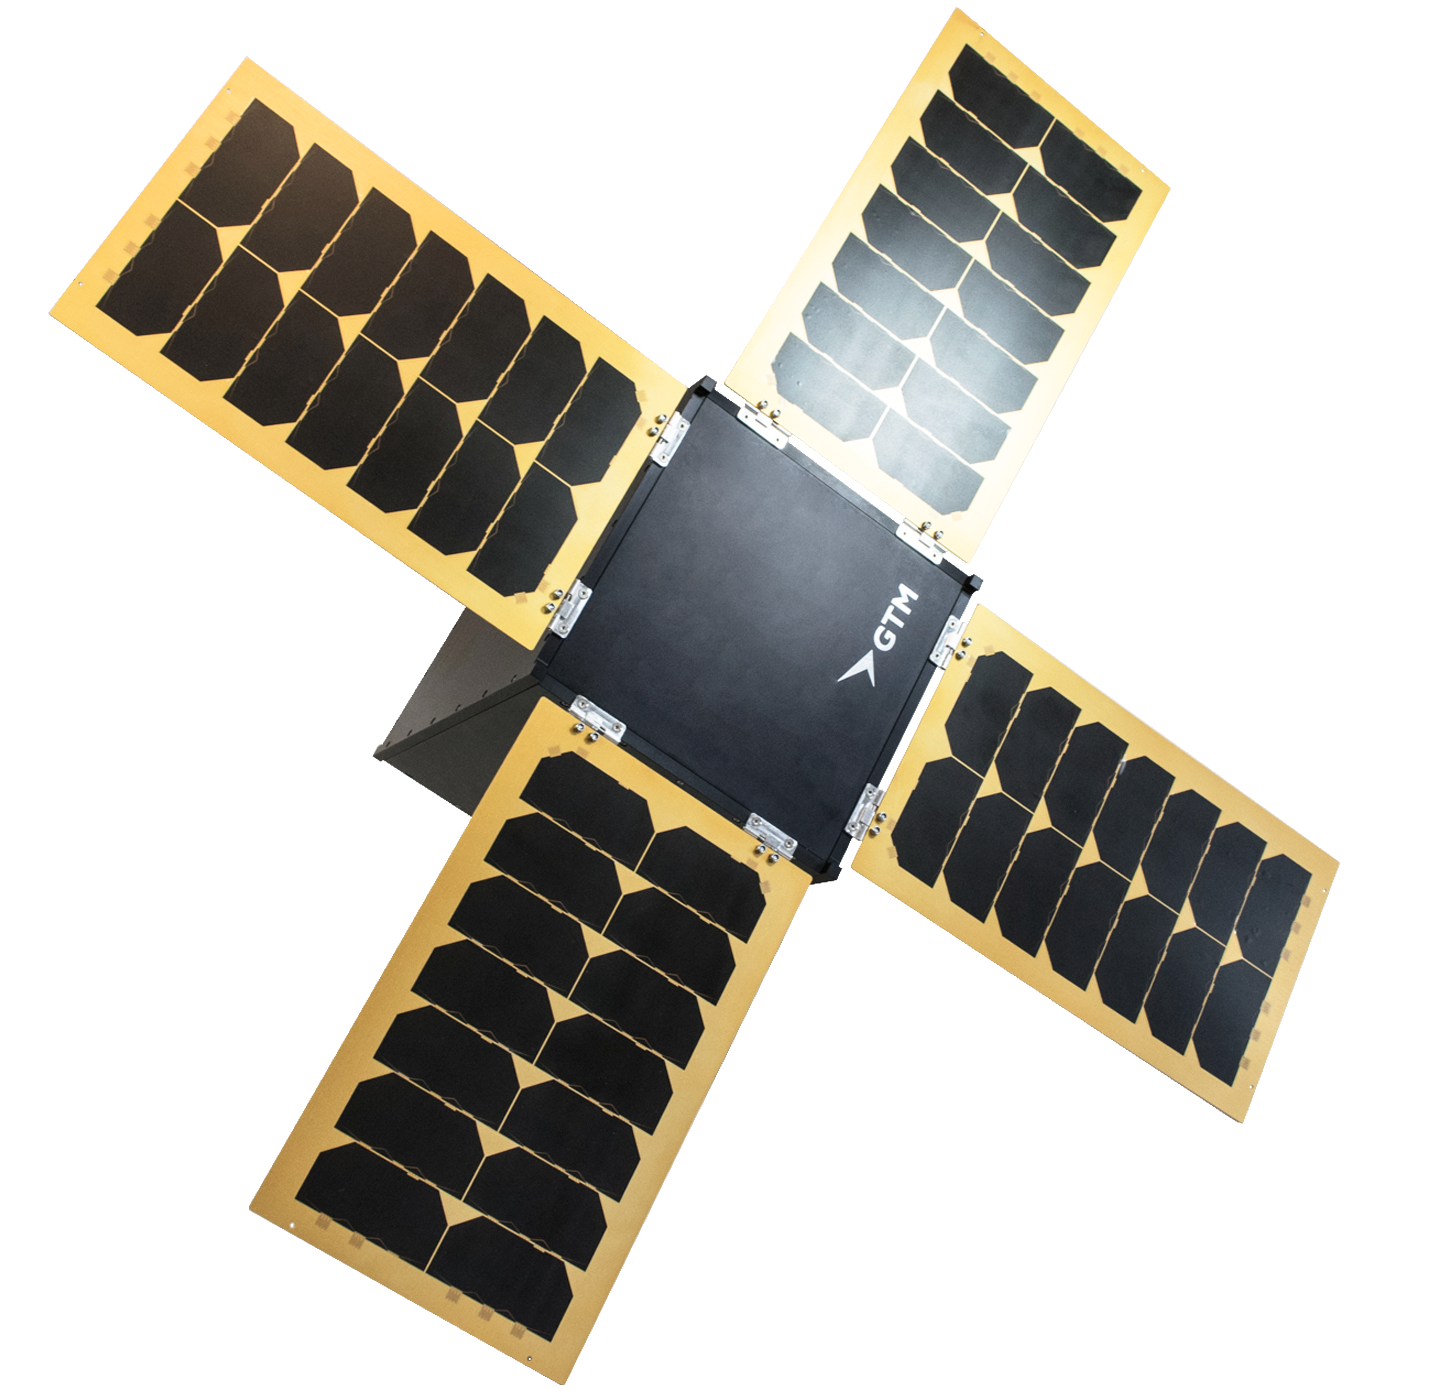 NextGen CubeSat - GTM Advanced Structures